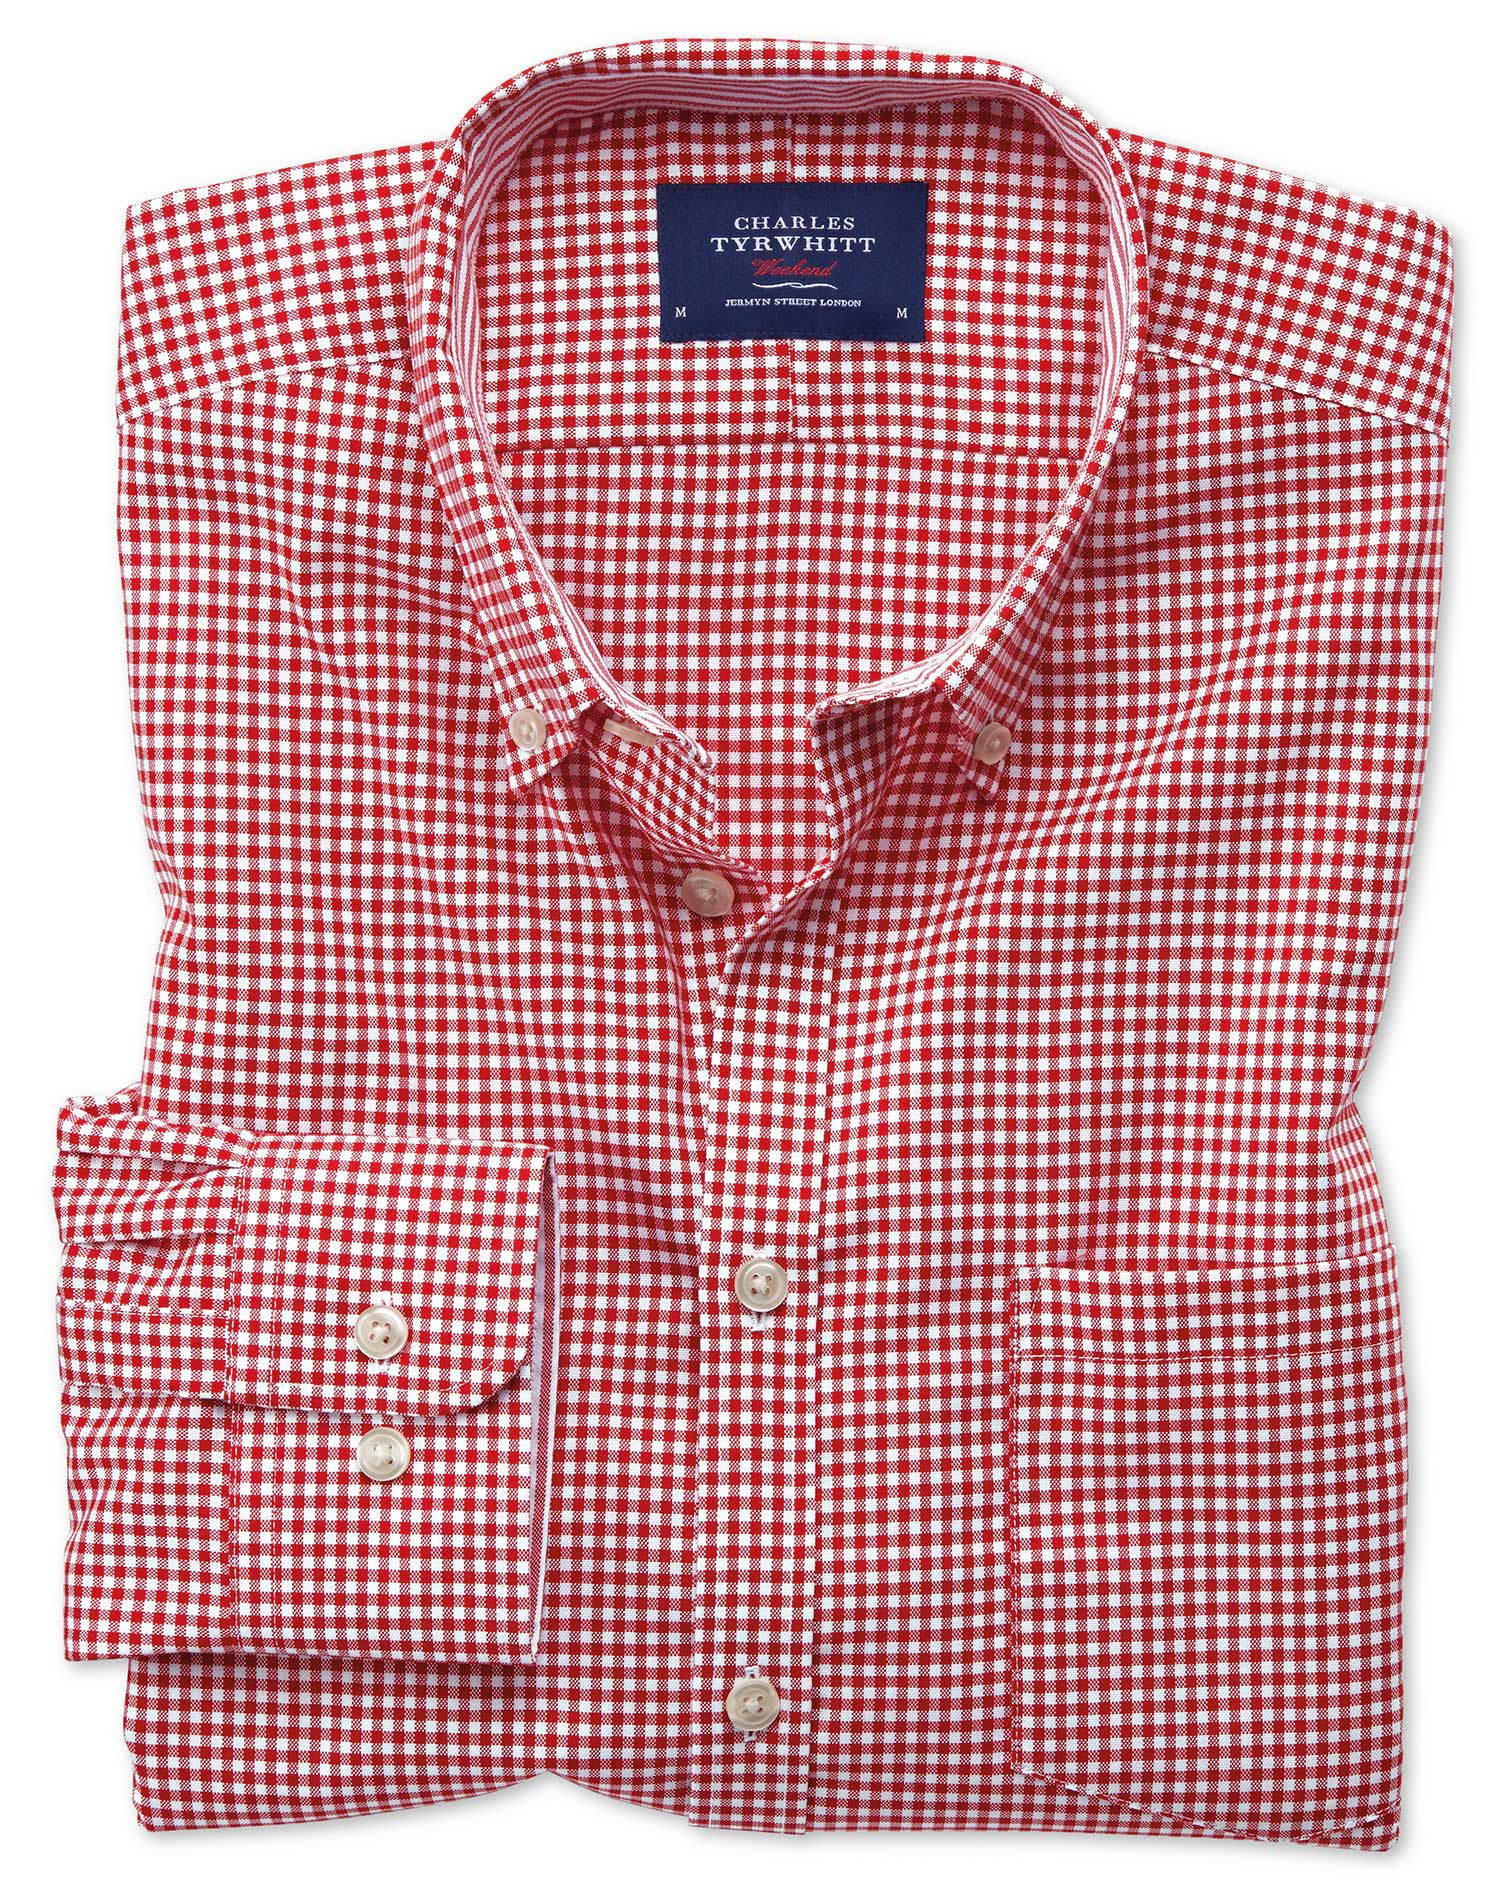 Slim Fit Button-Down Non-Iron Oxford Gingham Red Cotton Shirt Single Cuff Size Small by Charles Tyrw